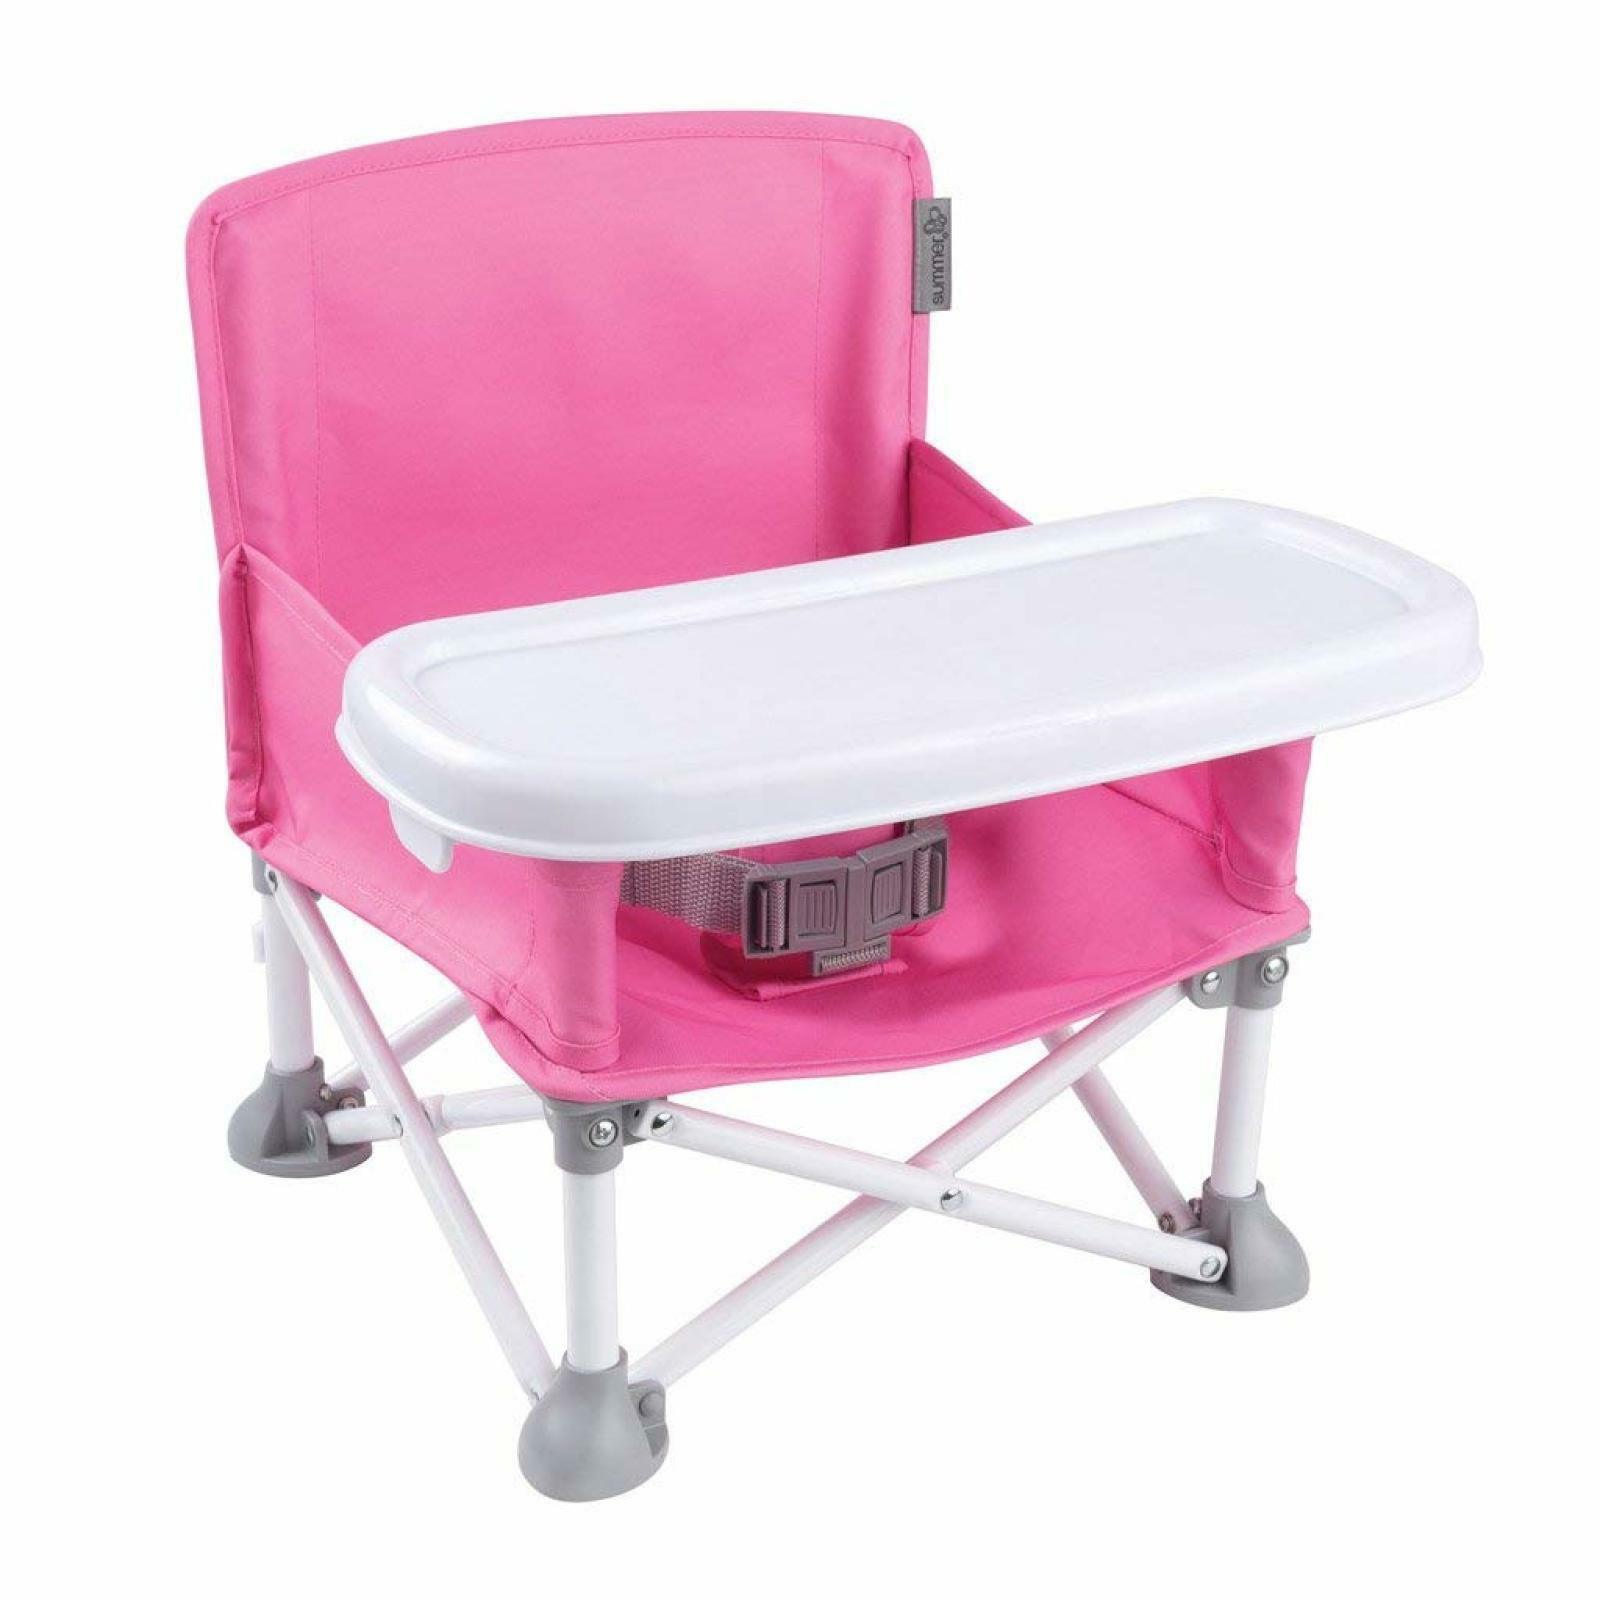 Color : Blue, Size : 29 * 21 * 44cm Portable High Chair Infant Tray Travel Booster Seat Foldable Chair Removable Baby Feeding Dinning Chairs